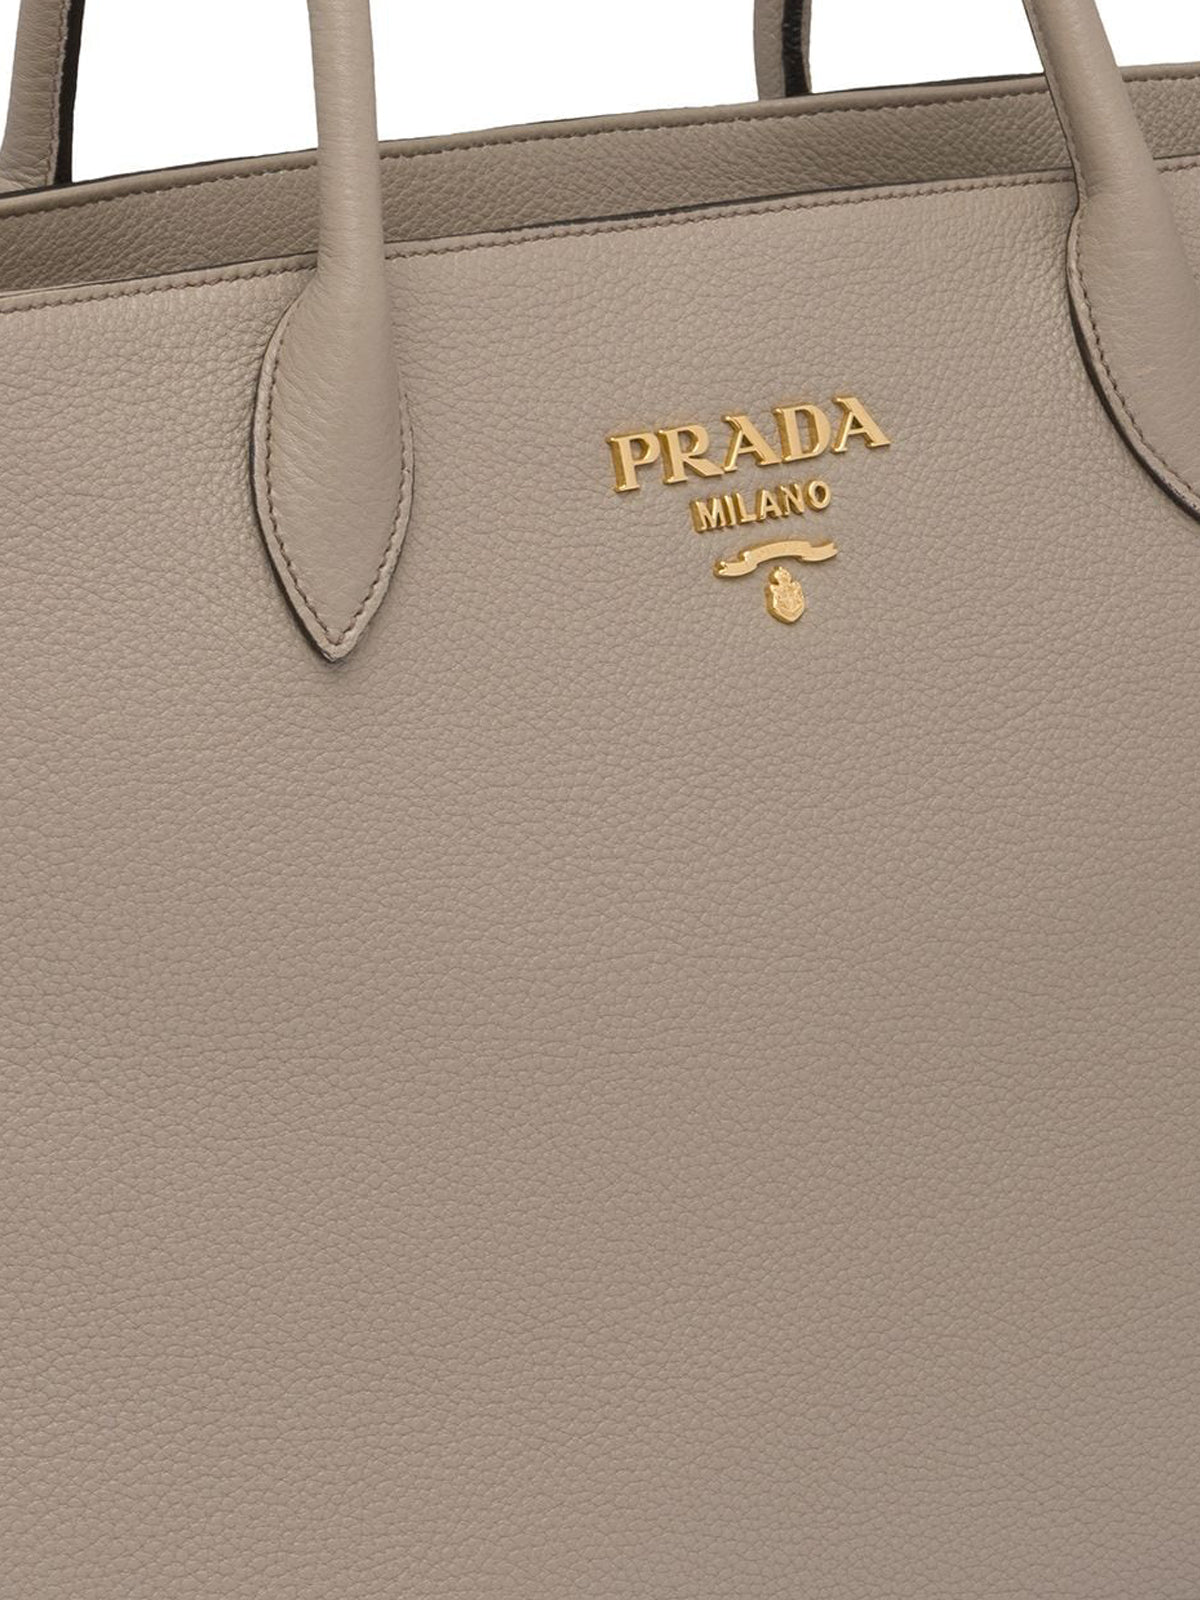 SHOPPING BAG PRADA